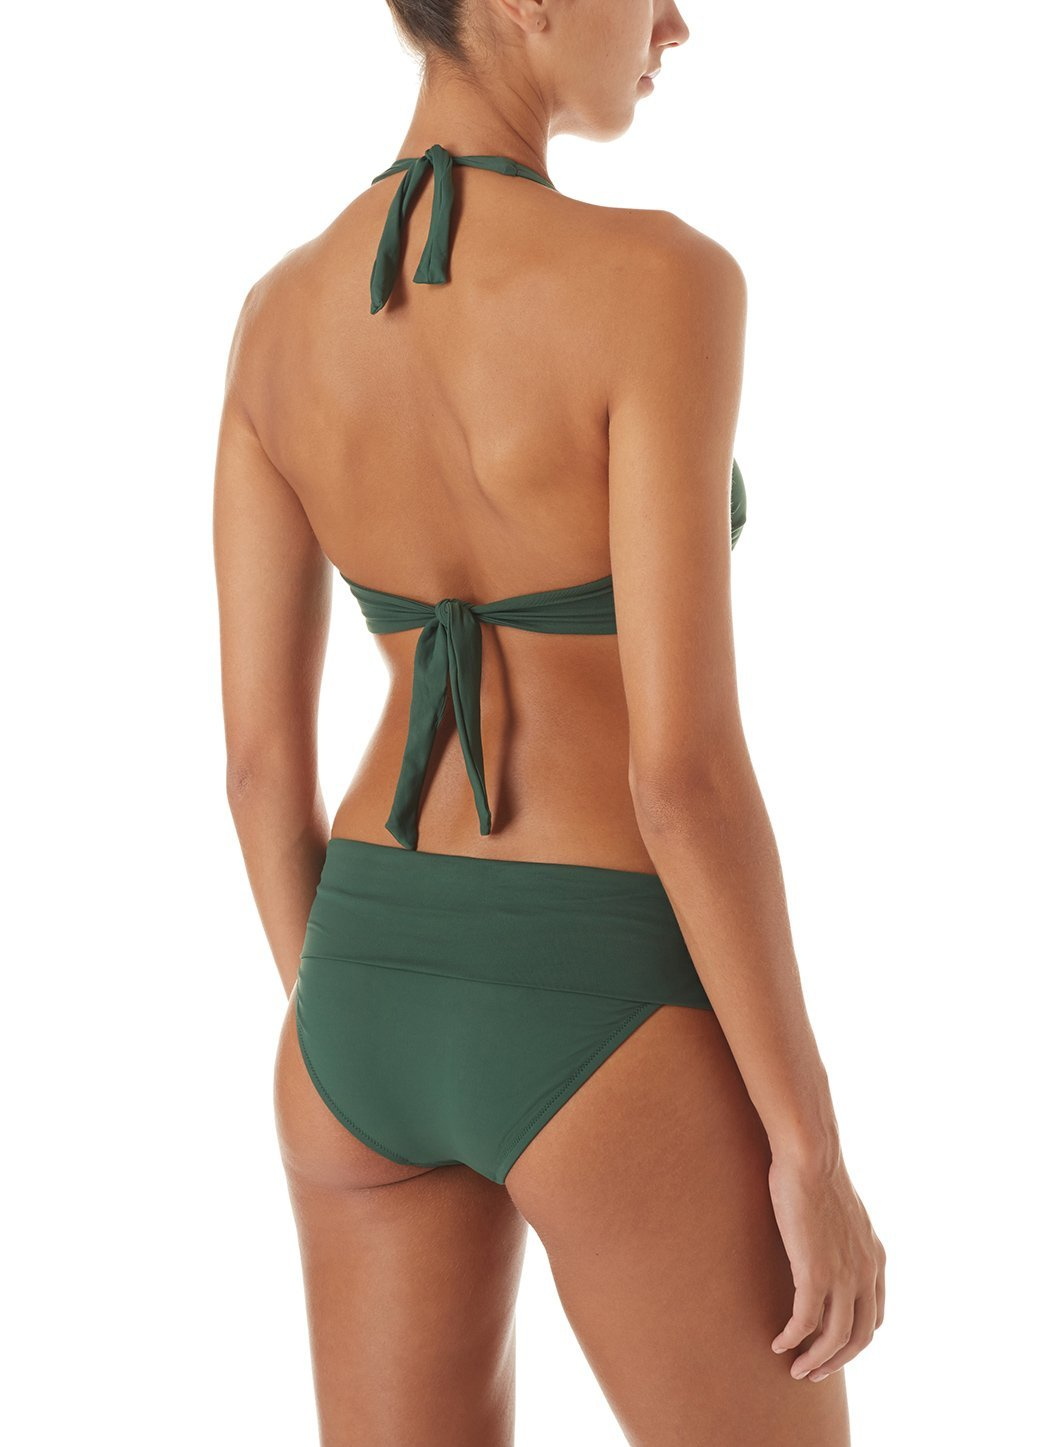 exclusive brussels forest halterneck ring supportive bikini 2019 B